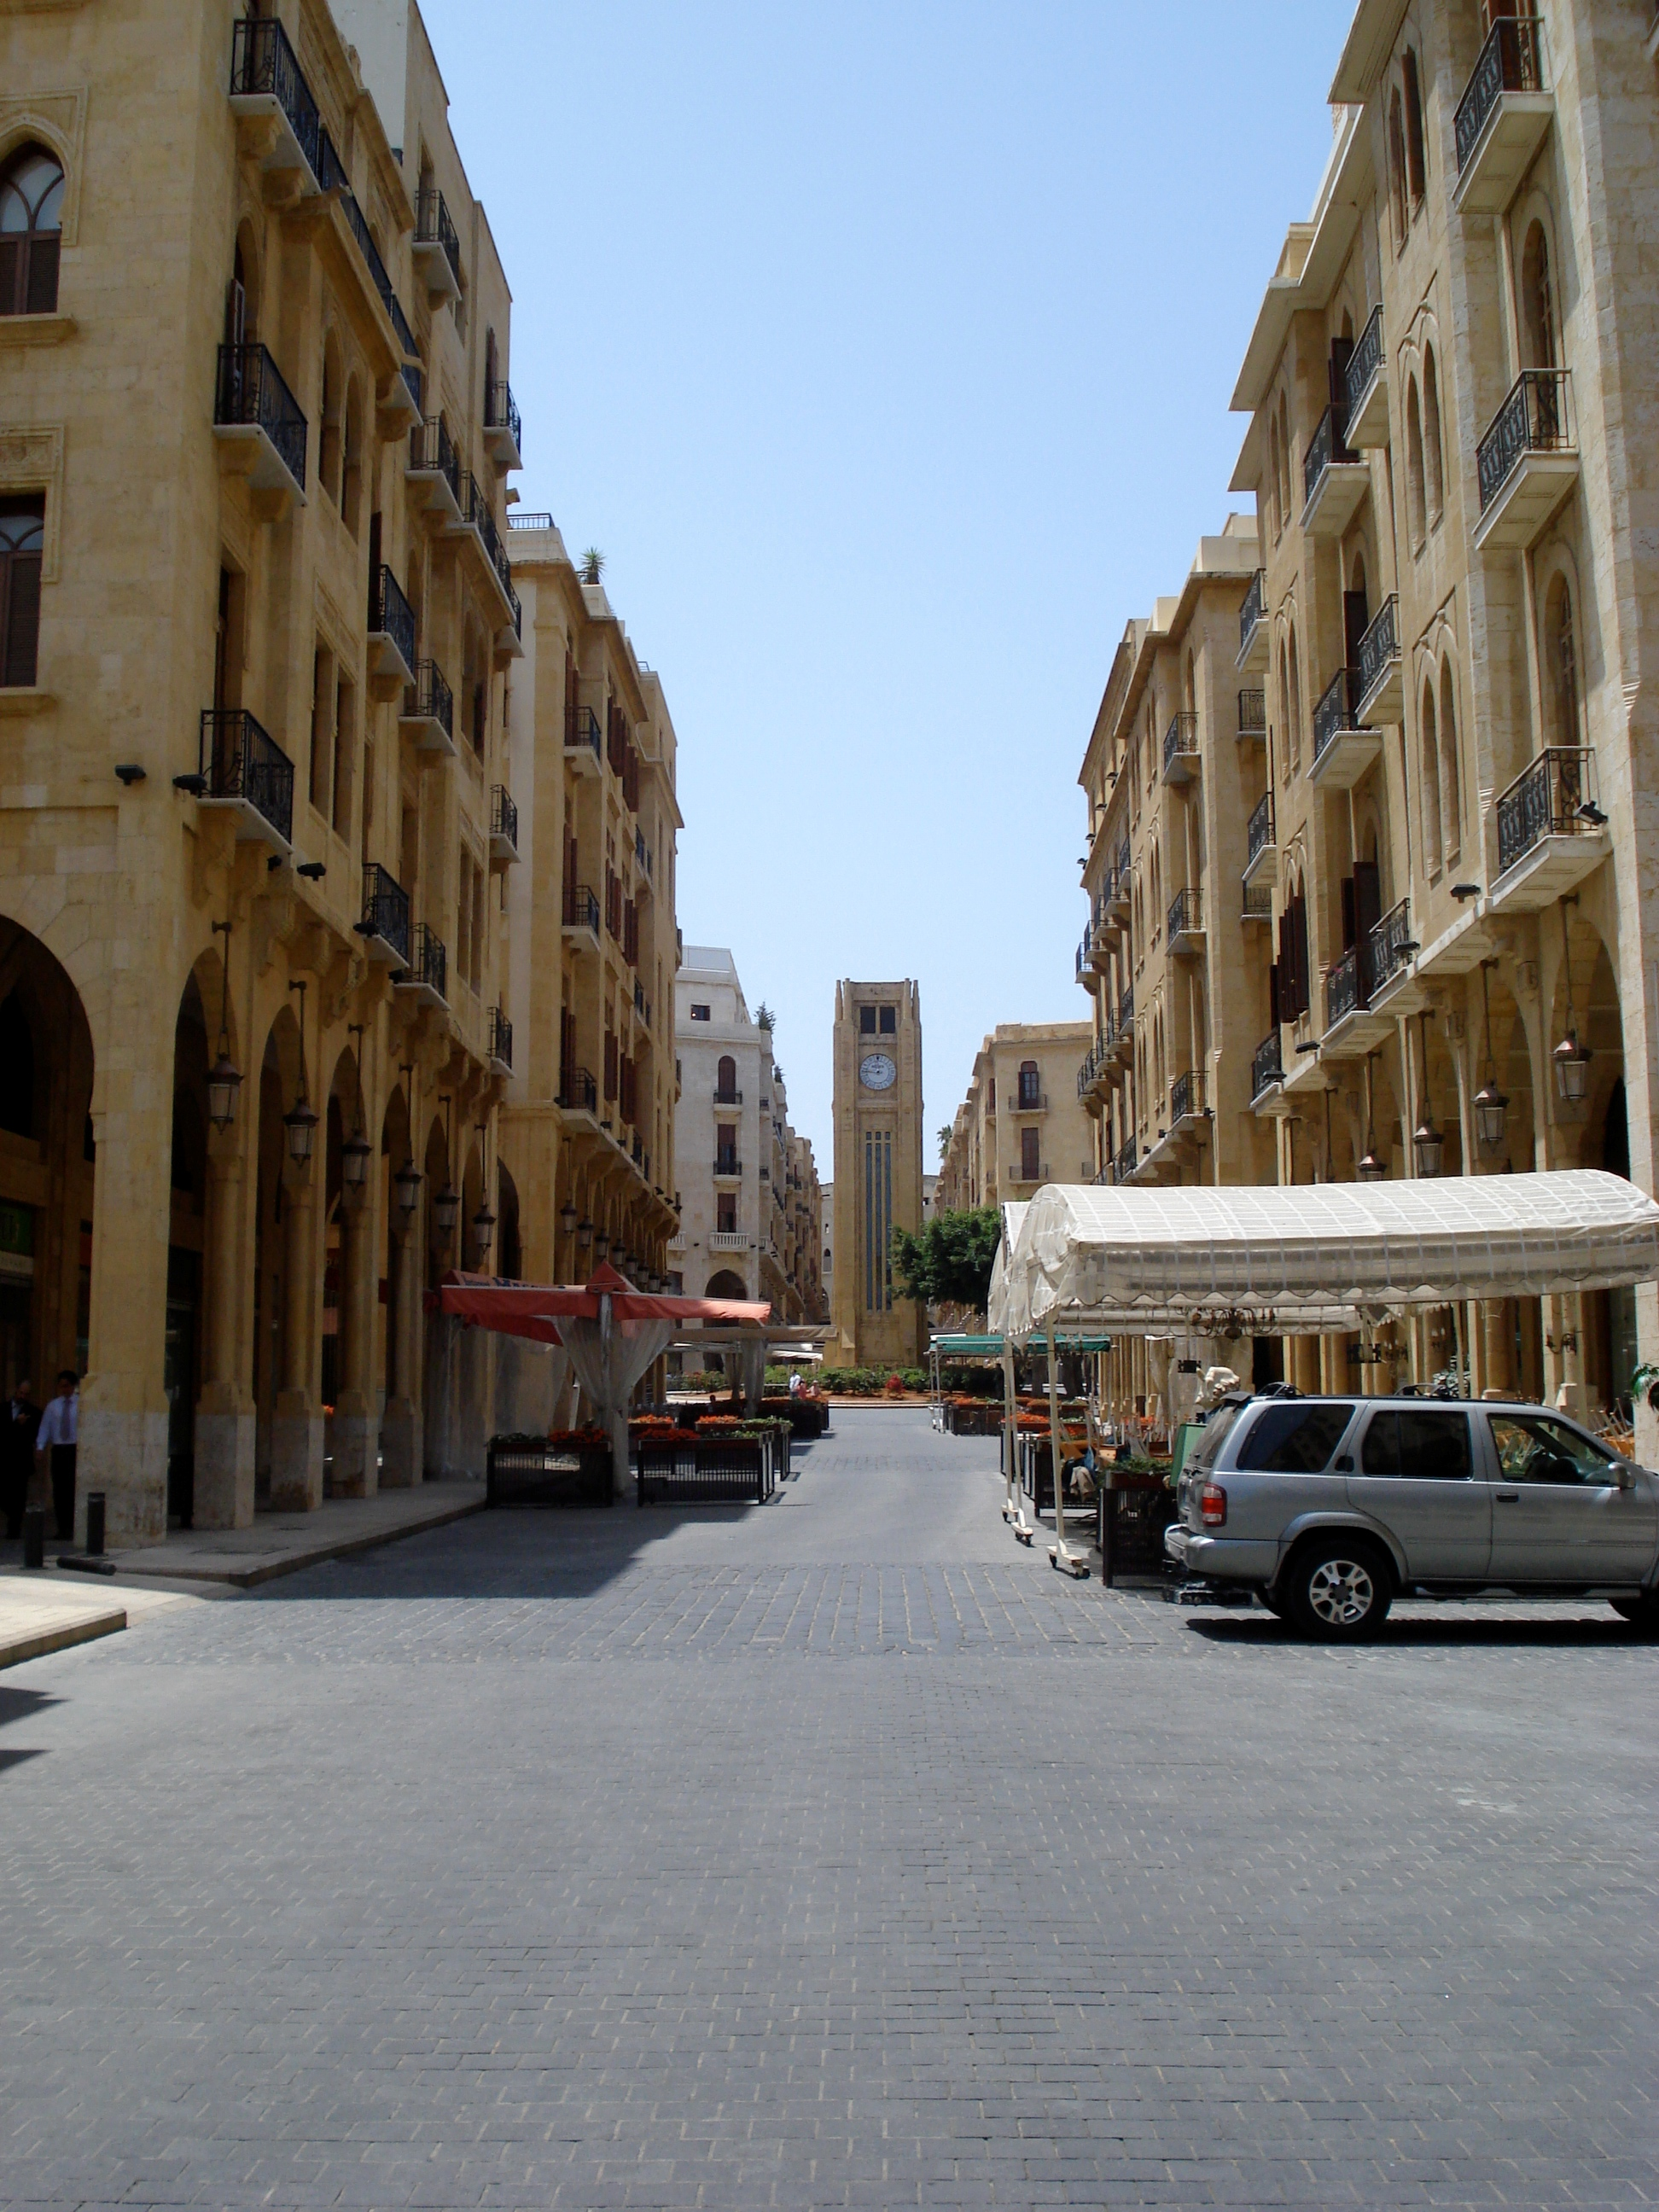 The once-crowded downtown area of Beirut is now quiet because people fear bomb attacks.